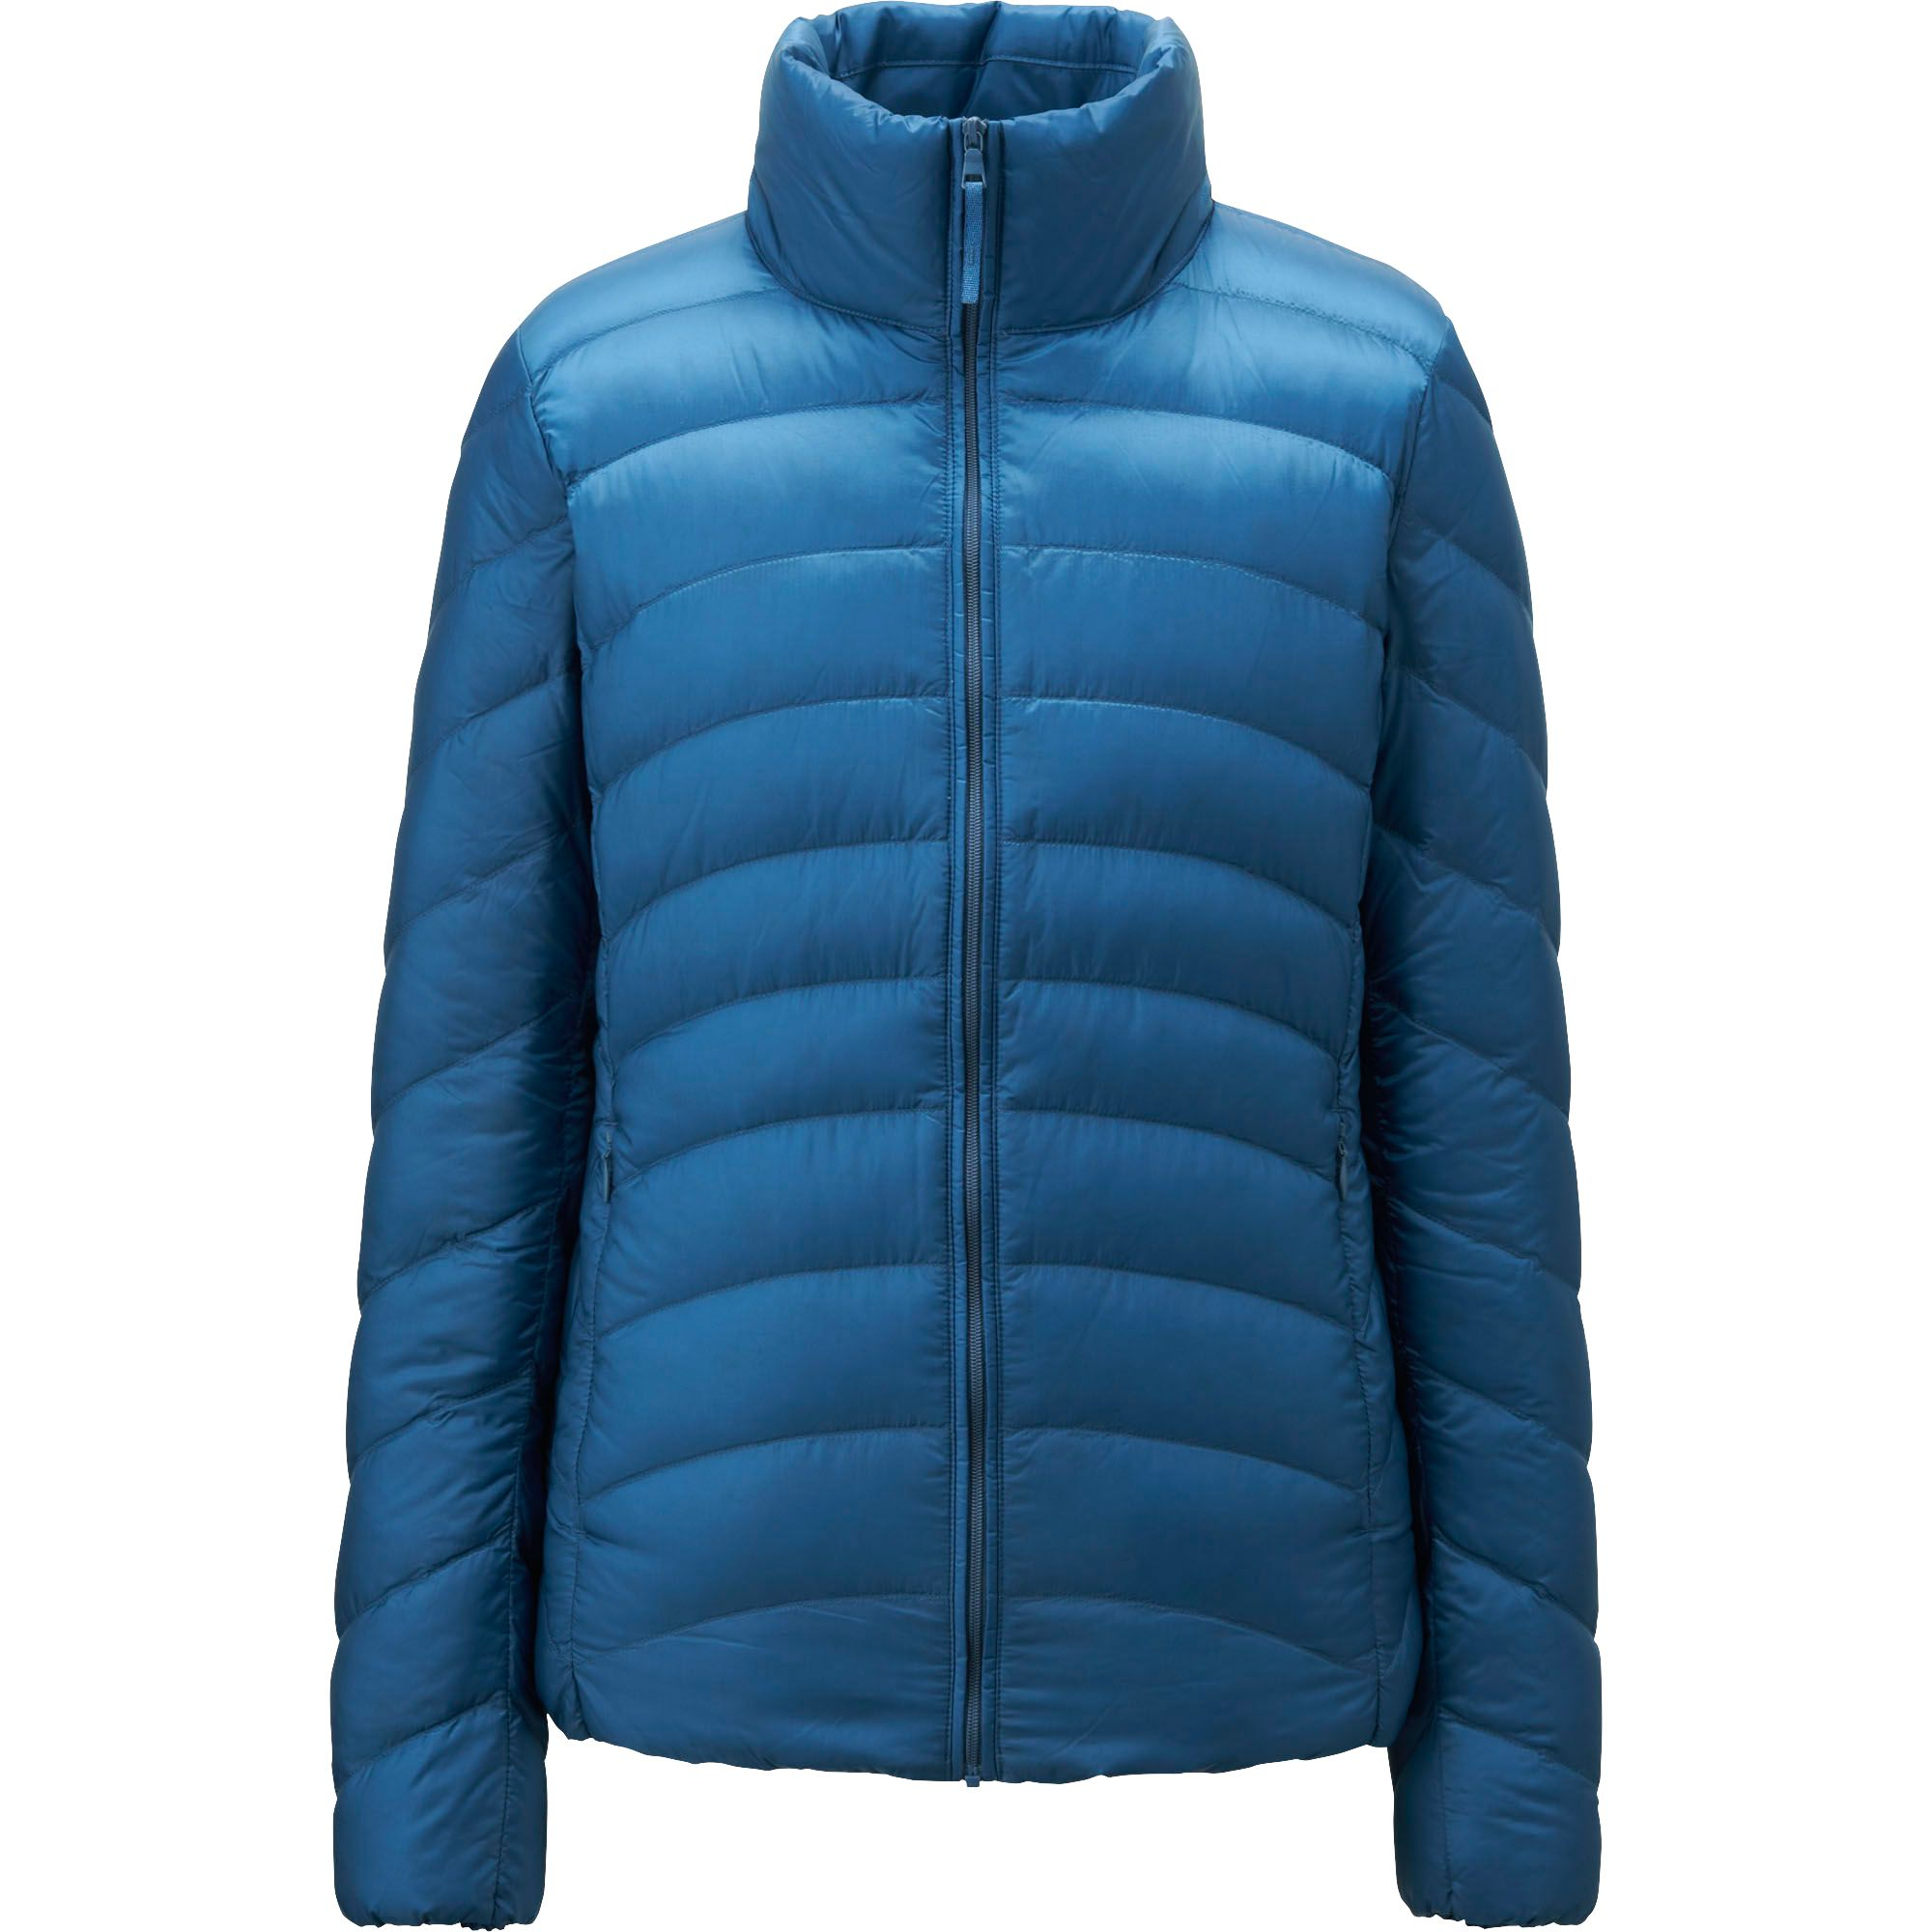 uniqlo ultra light down jacket in blue. Black Bedroom Furniture Sets. Home Design Ideas